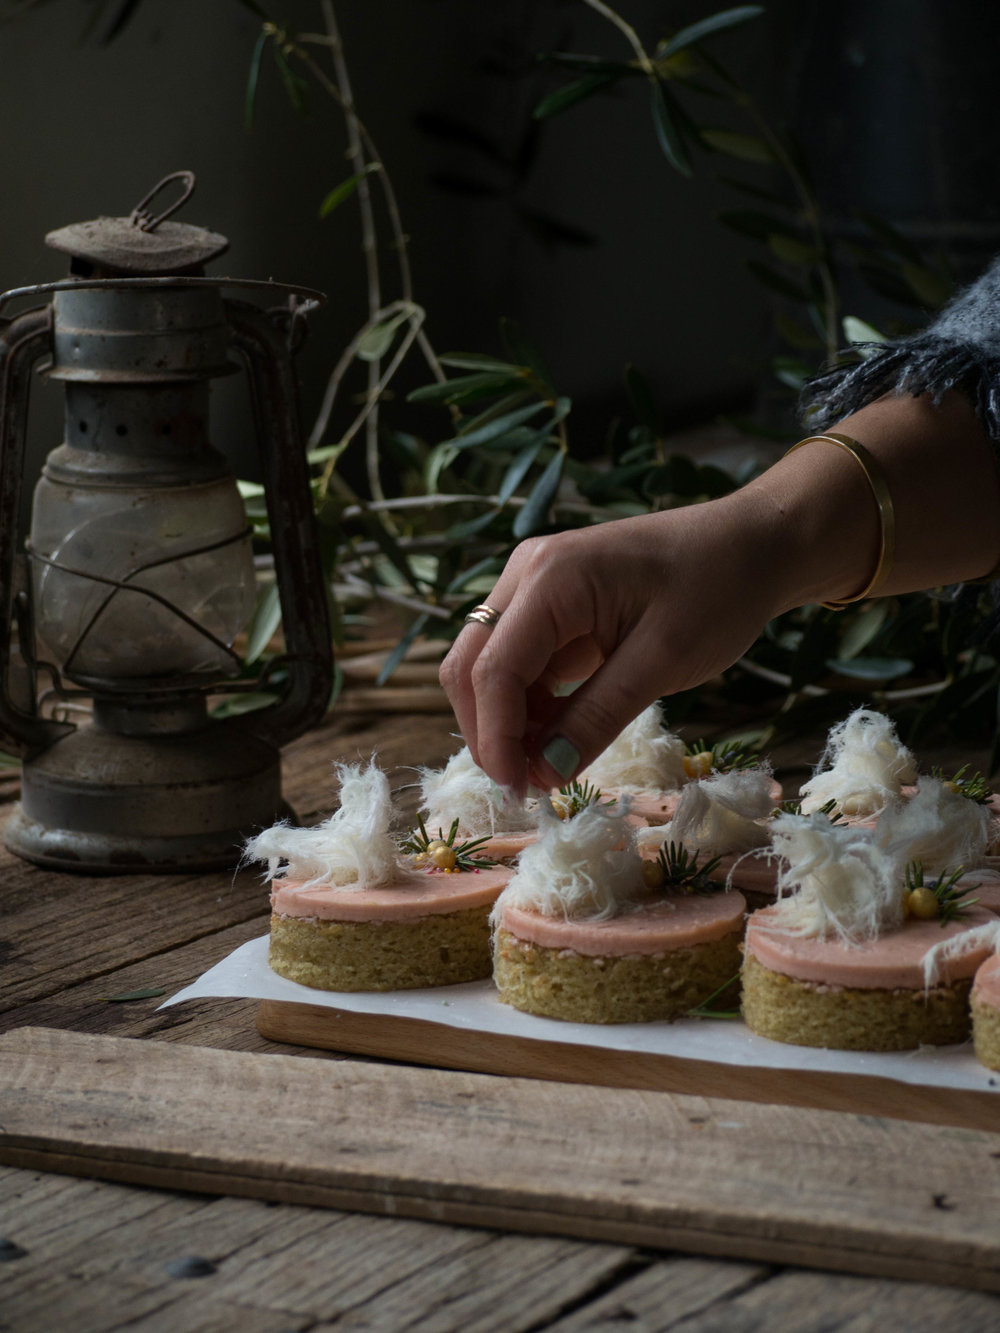 Rhubarb & Olive Oil Cakes - Made by Molly Yeh